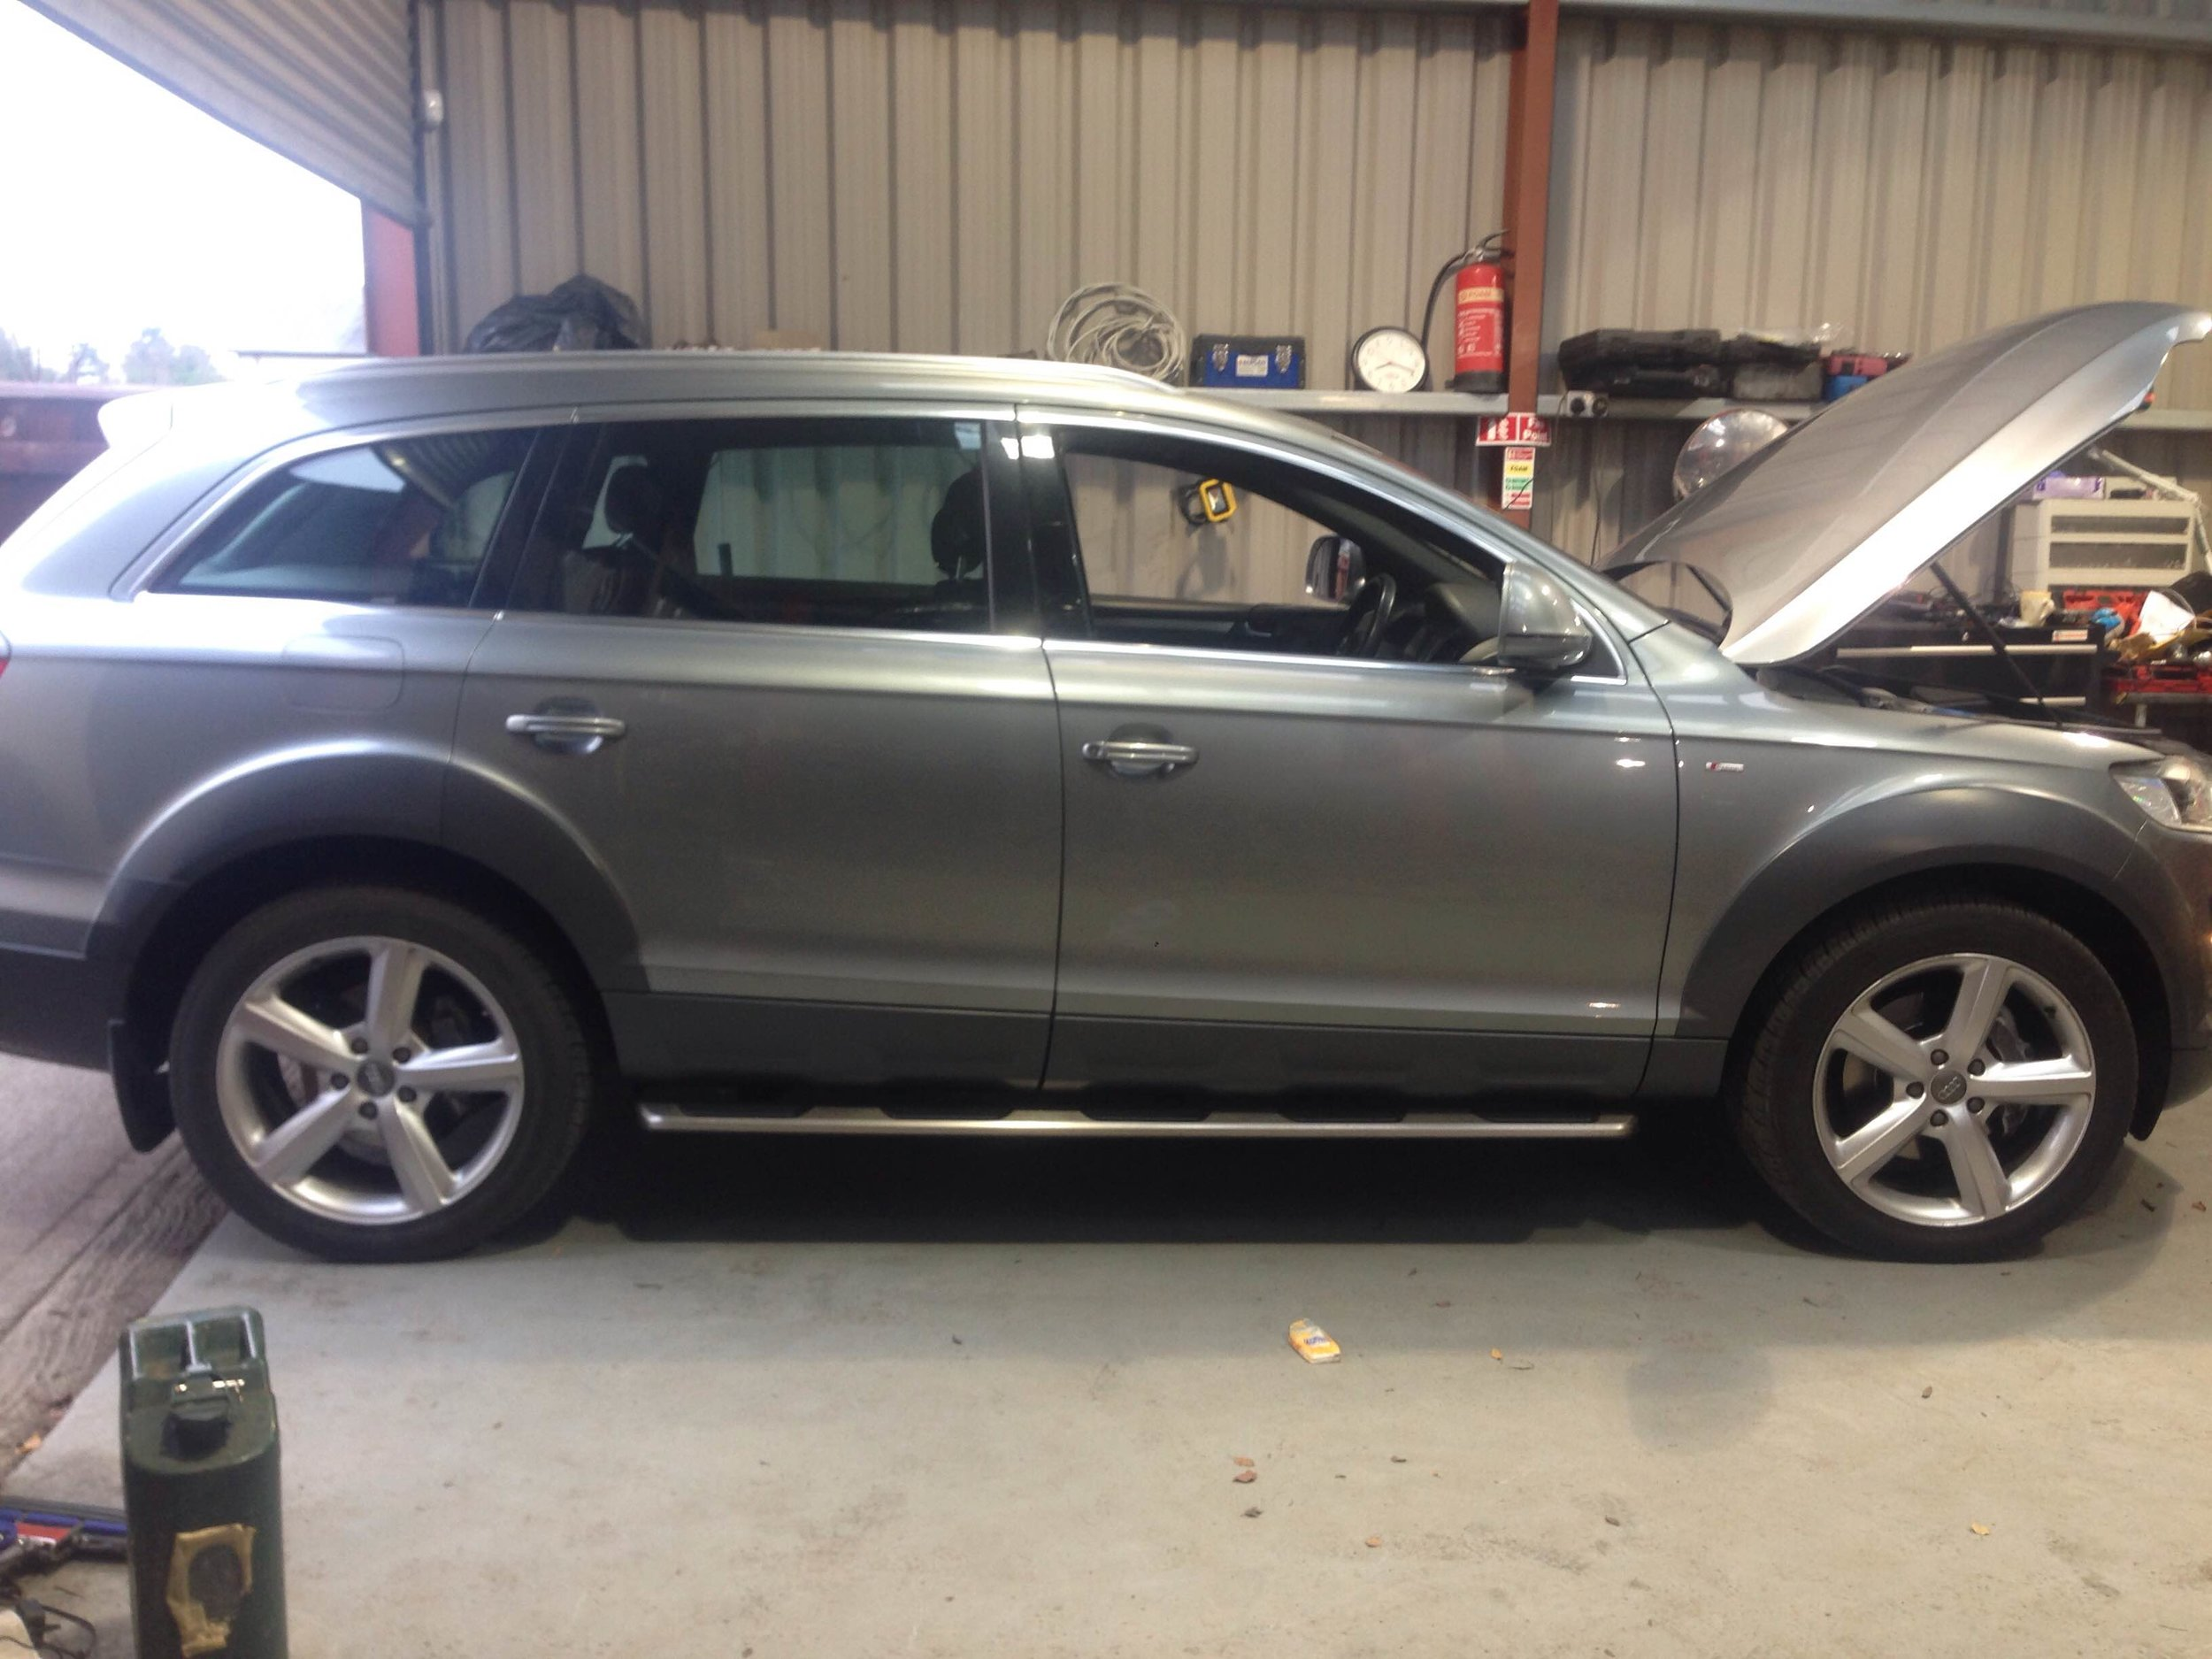 AUDI Q7 ECU REMAPPING TUNING VIEZU.JPG